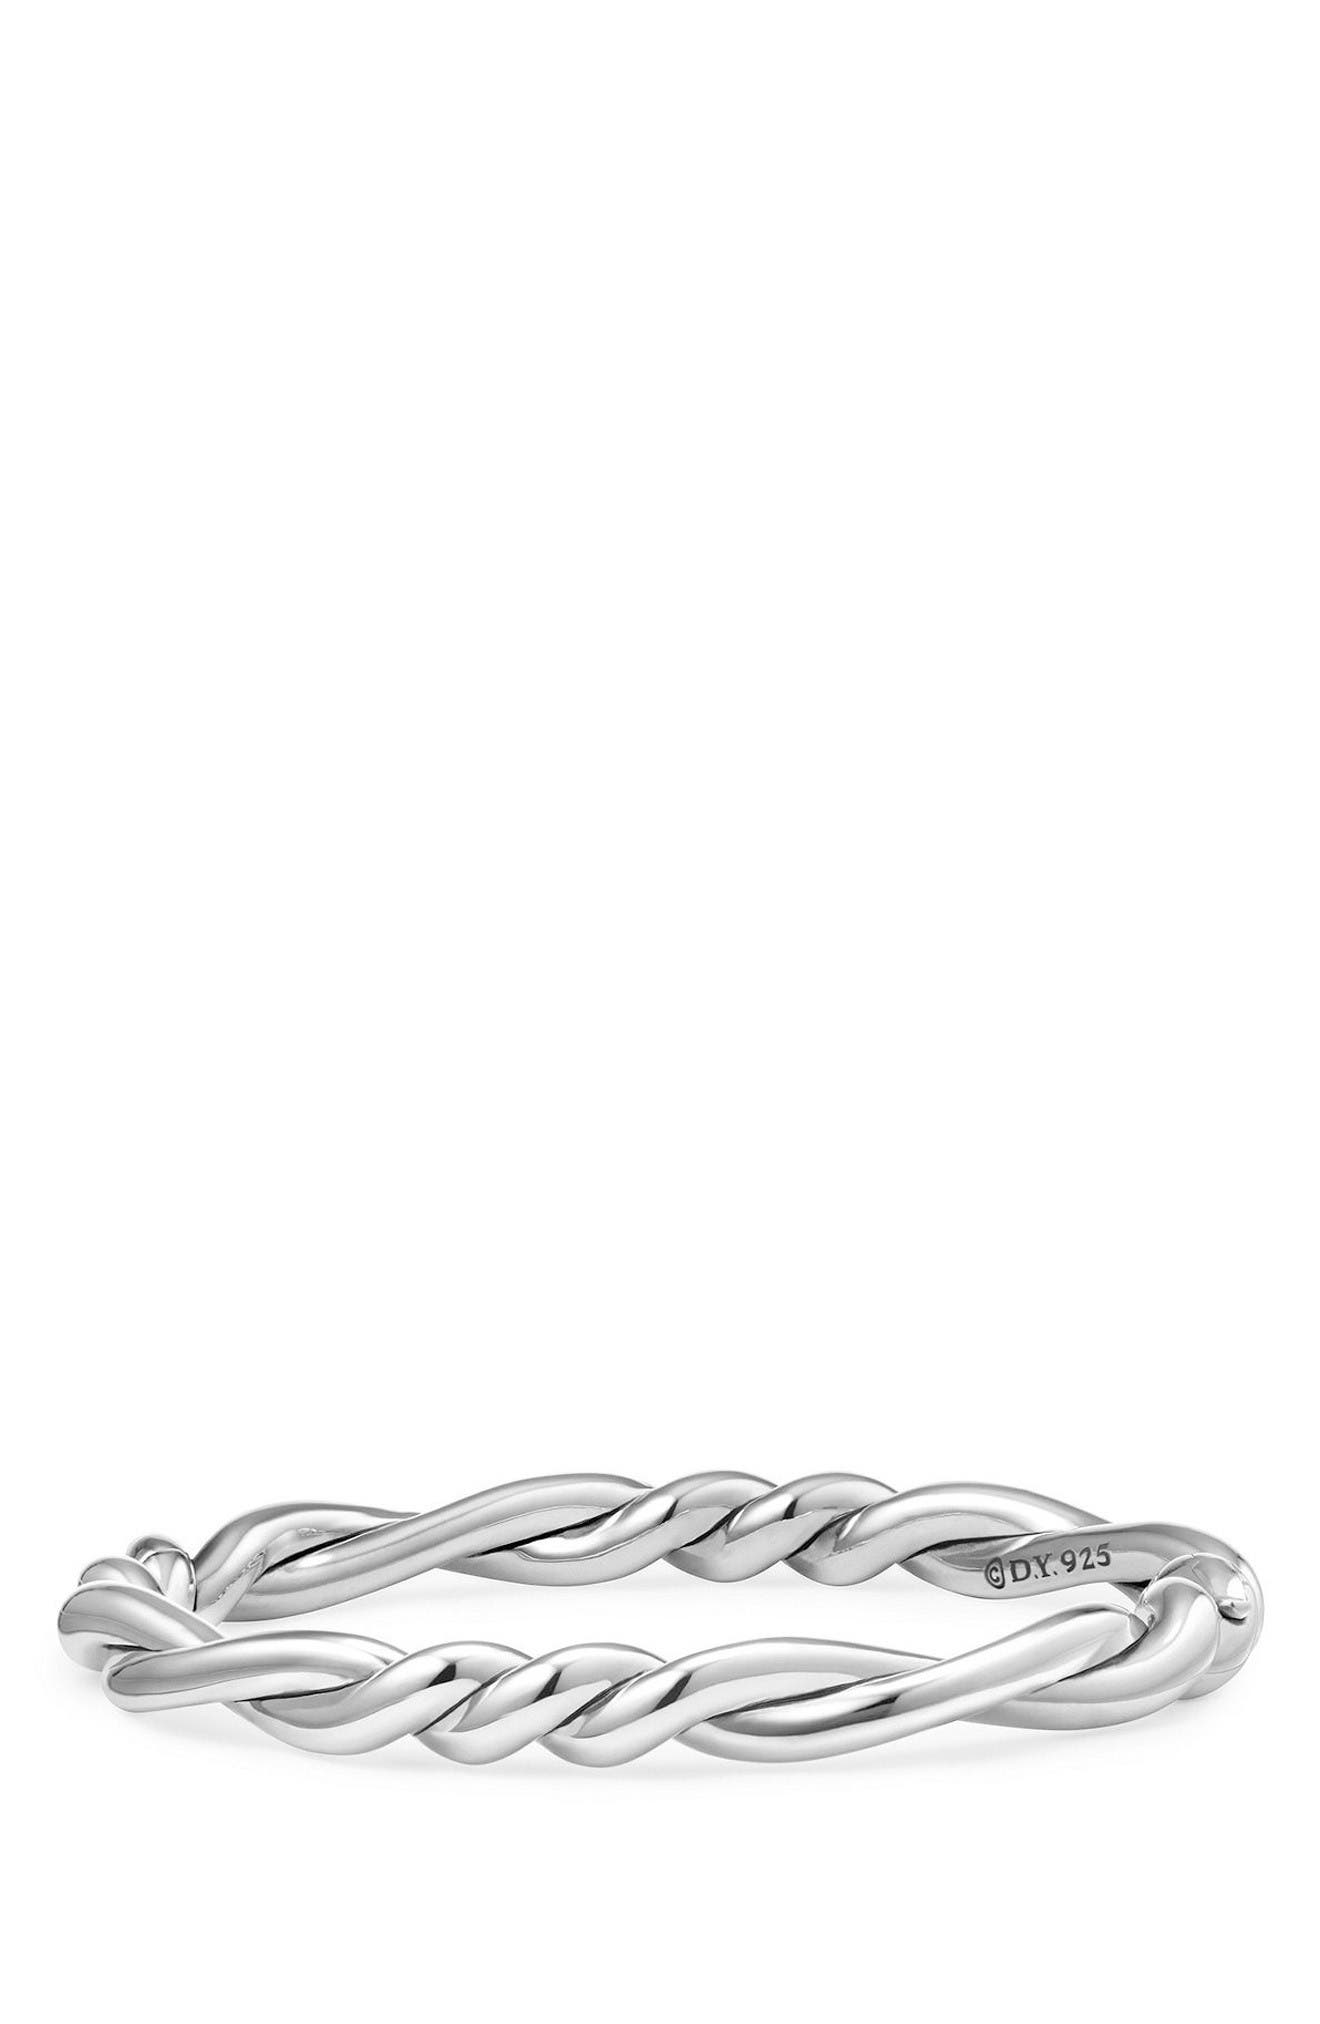 Alternate Image 1 Selected - David Yurman Continuance Center Twist Bracelet